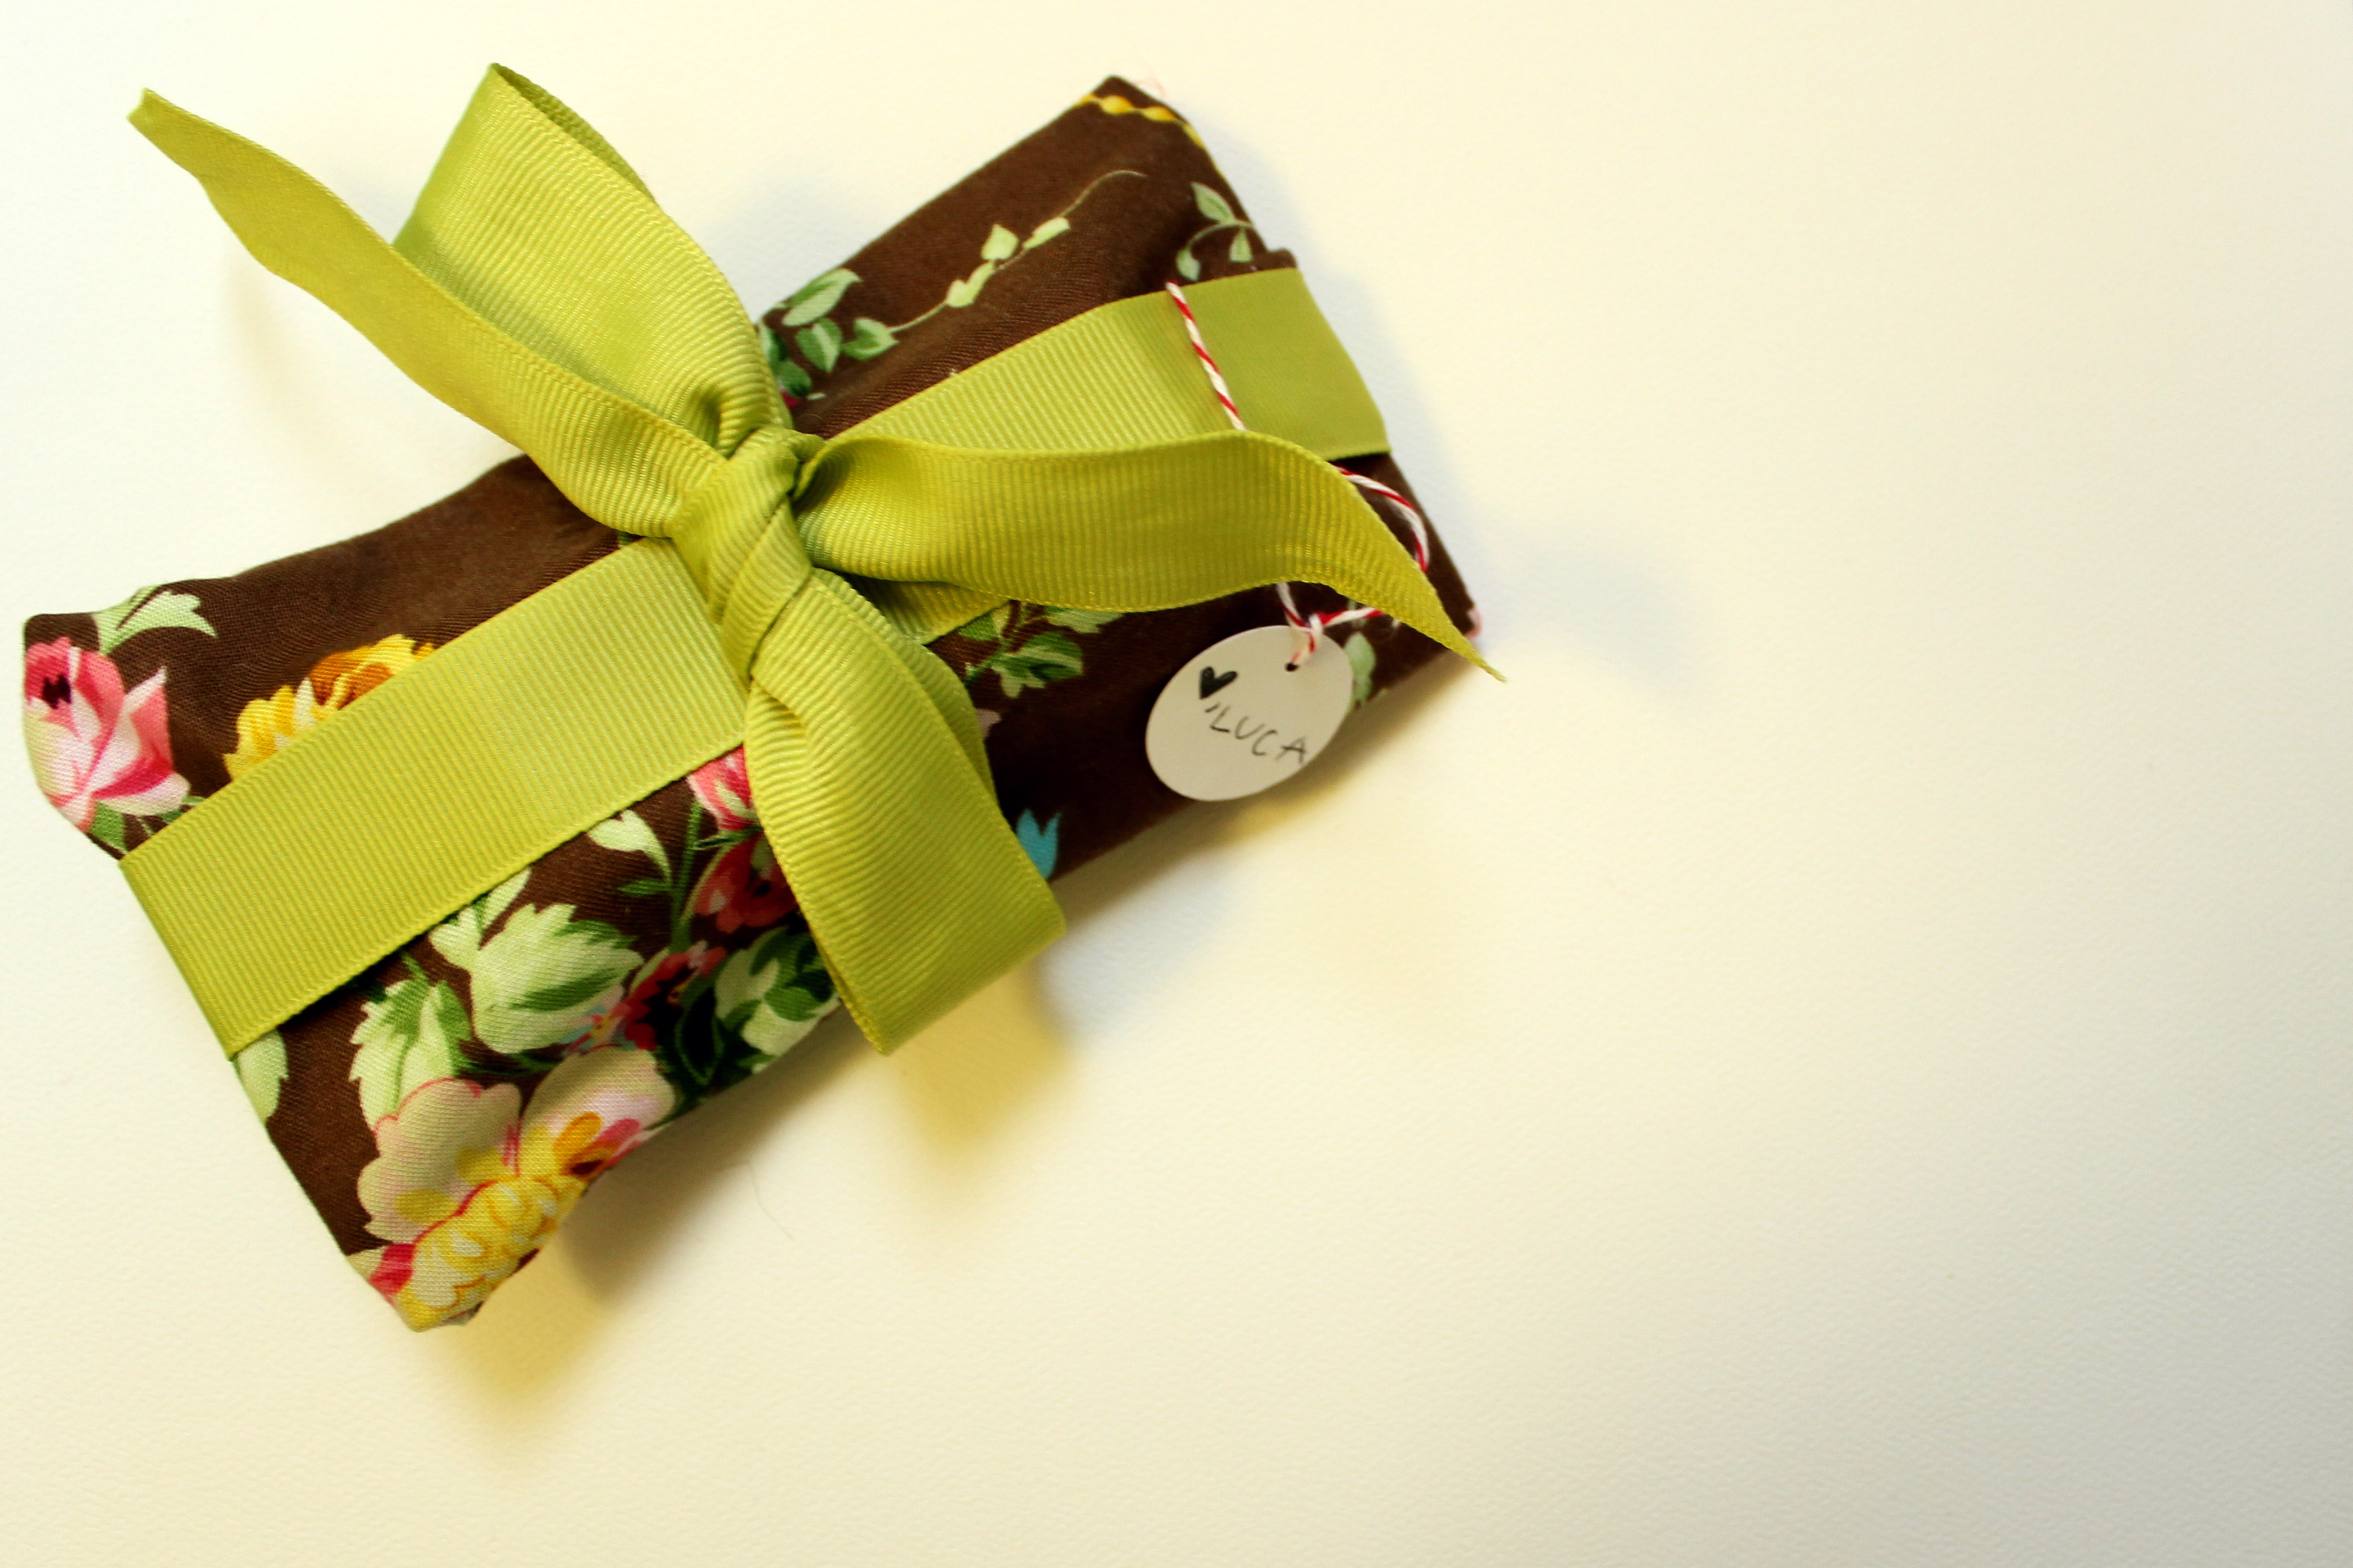 fabric wrapping (for his sister)